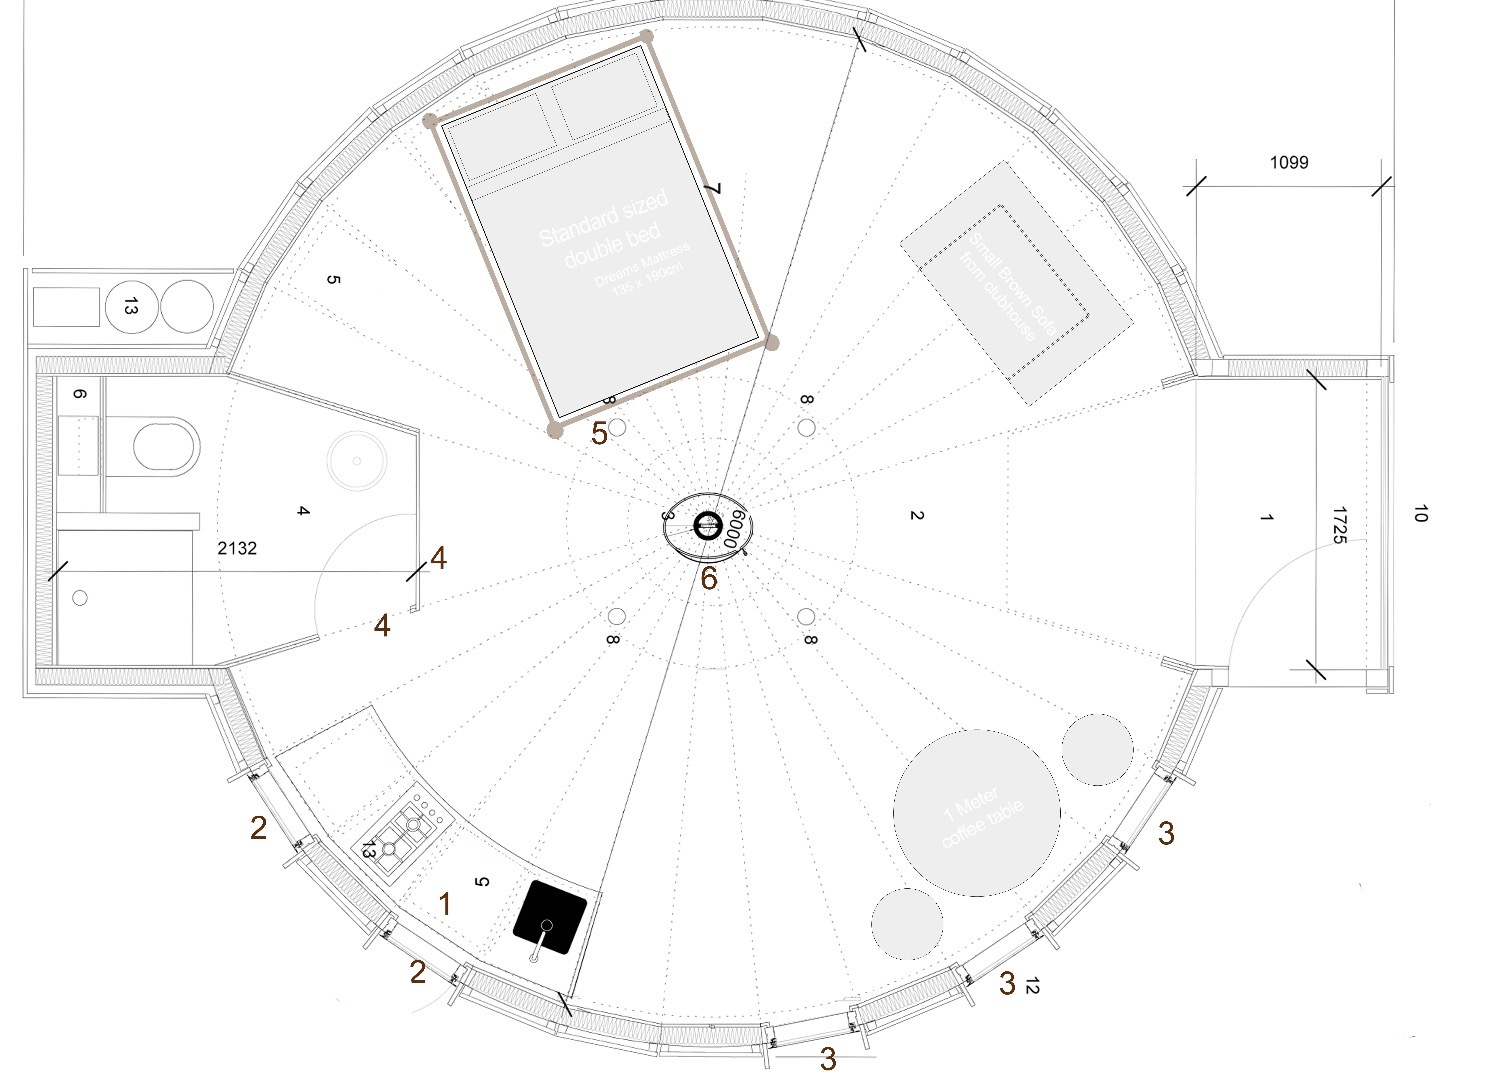 Original Echo Yurt floor plan